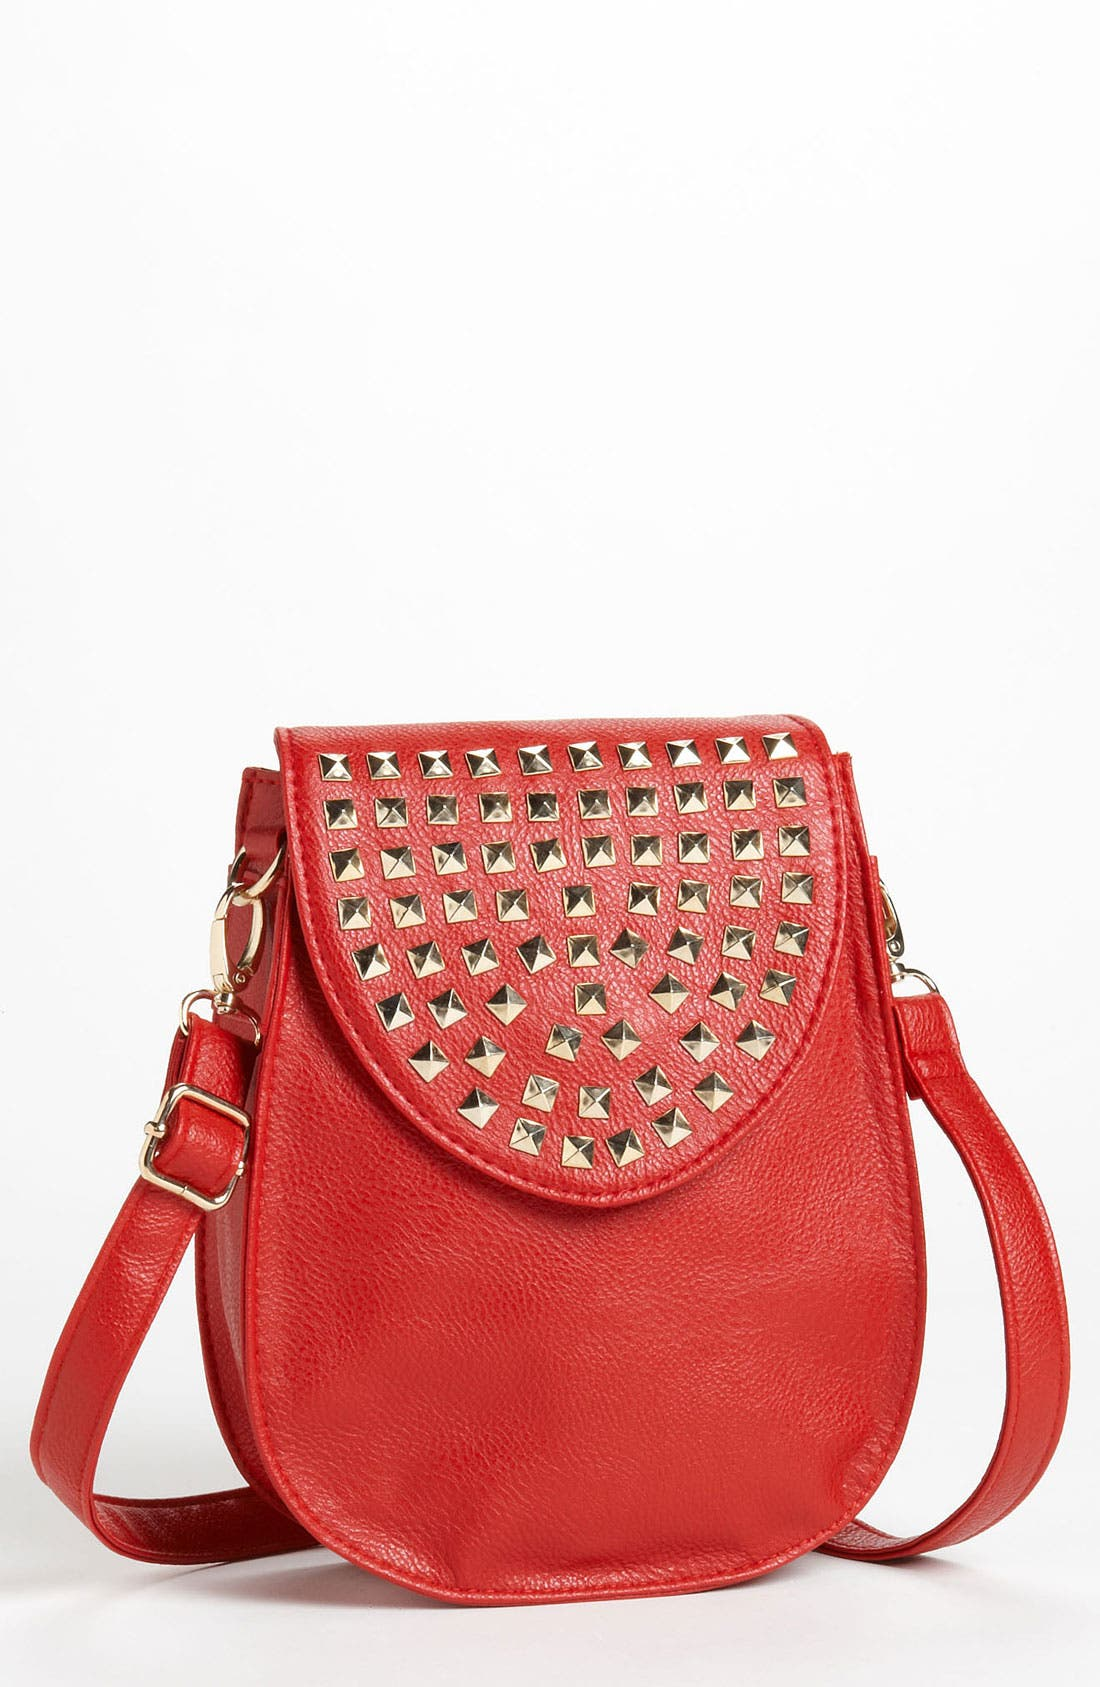 Main Image - Natasha Couture Studded Flap Crossbody Bag